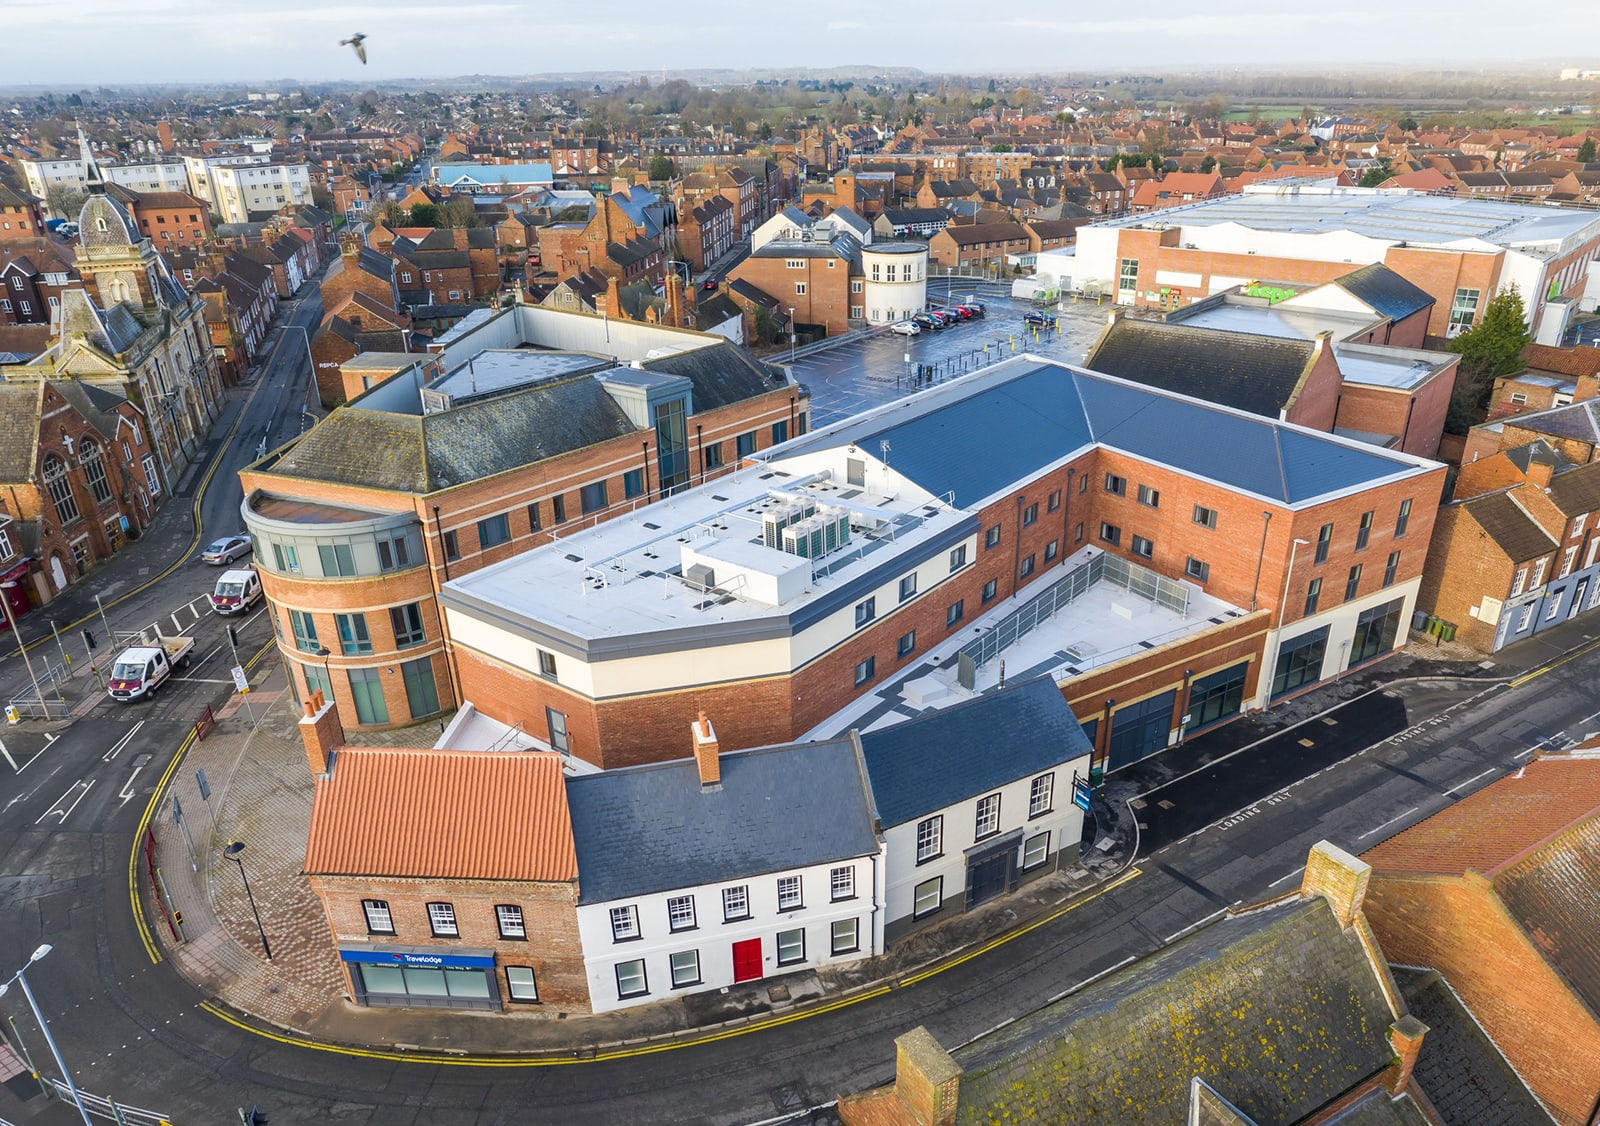 Former Robin Hood Hotel officially opens as Travelodge today